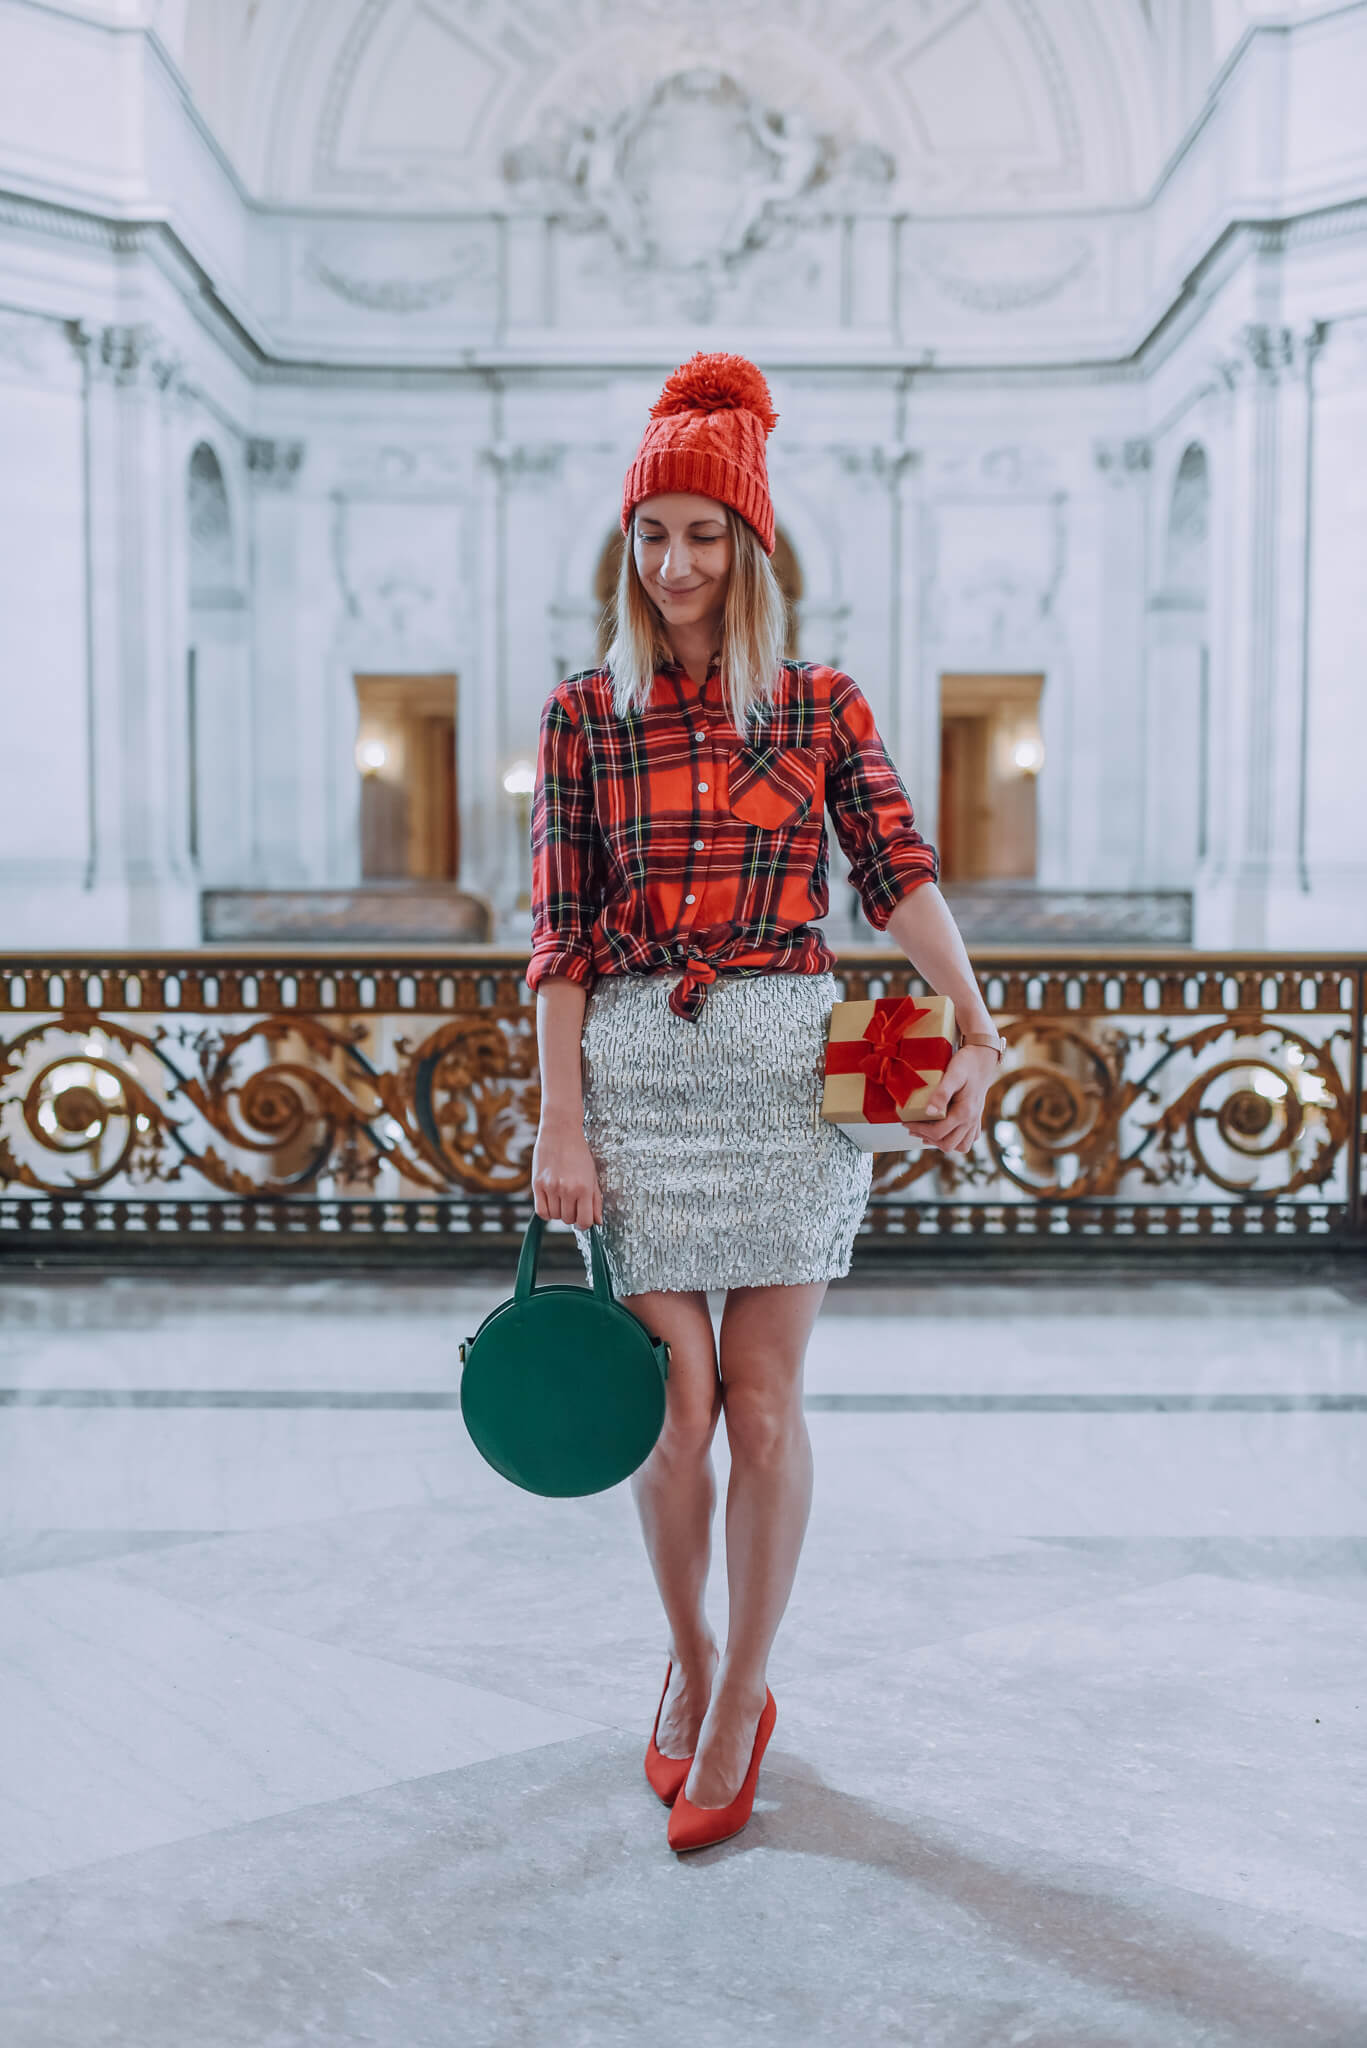 Plaid-and-sequin-outfit.jpg